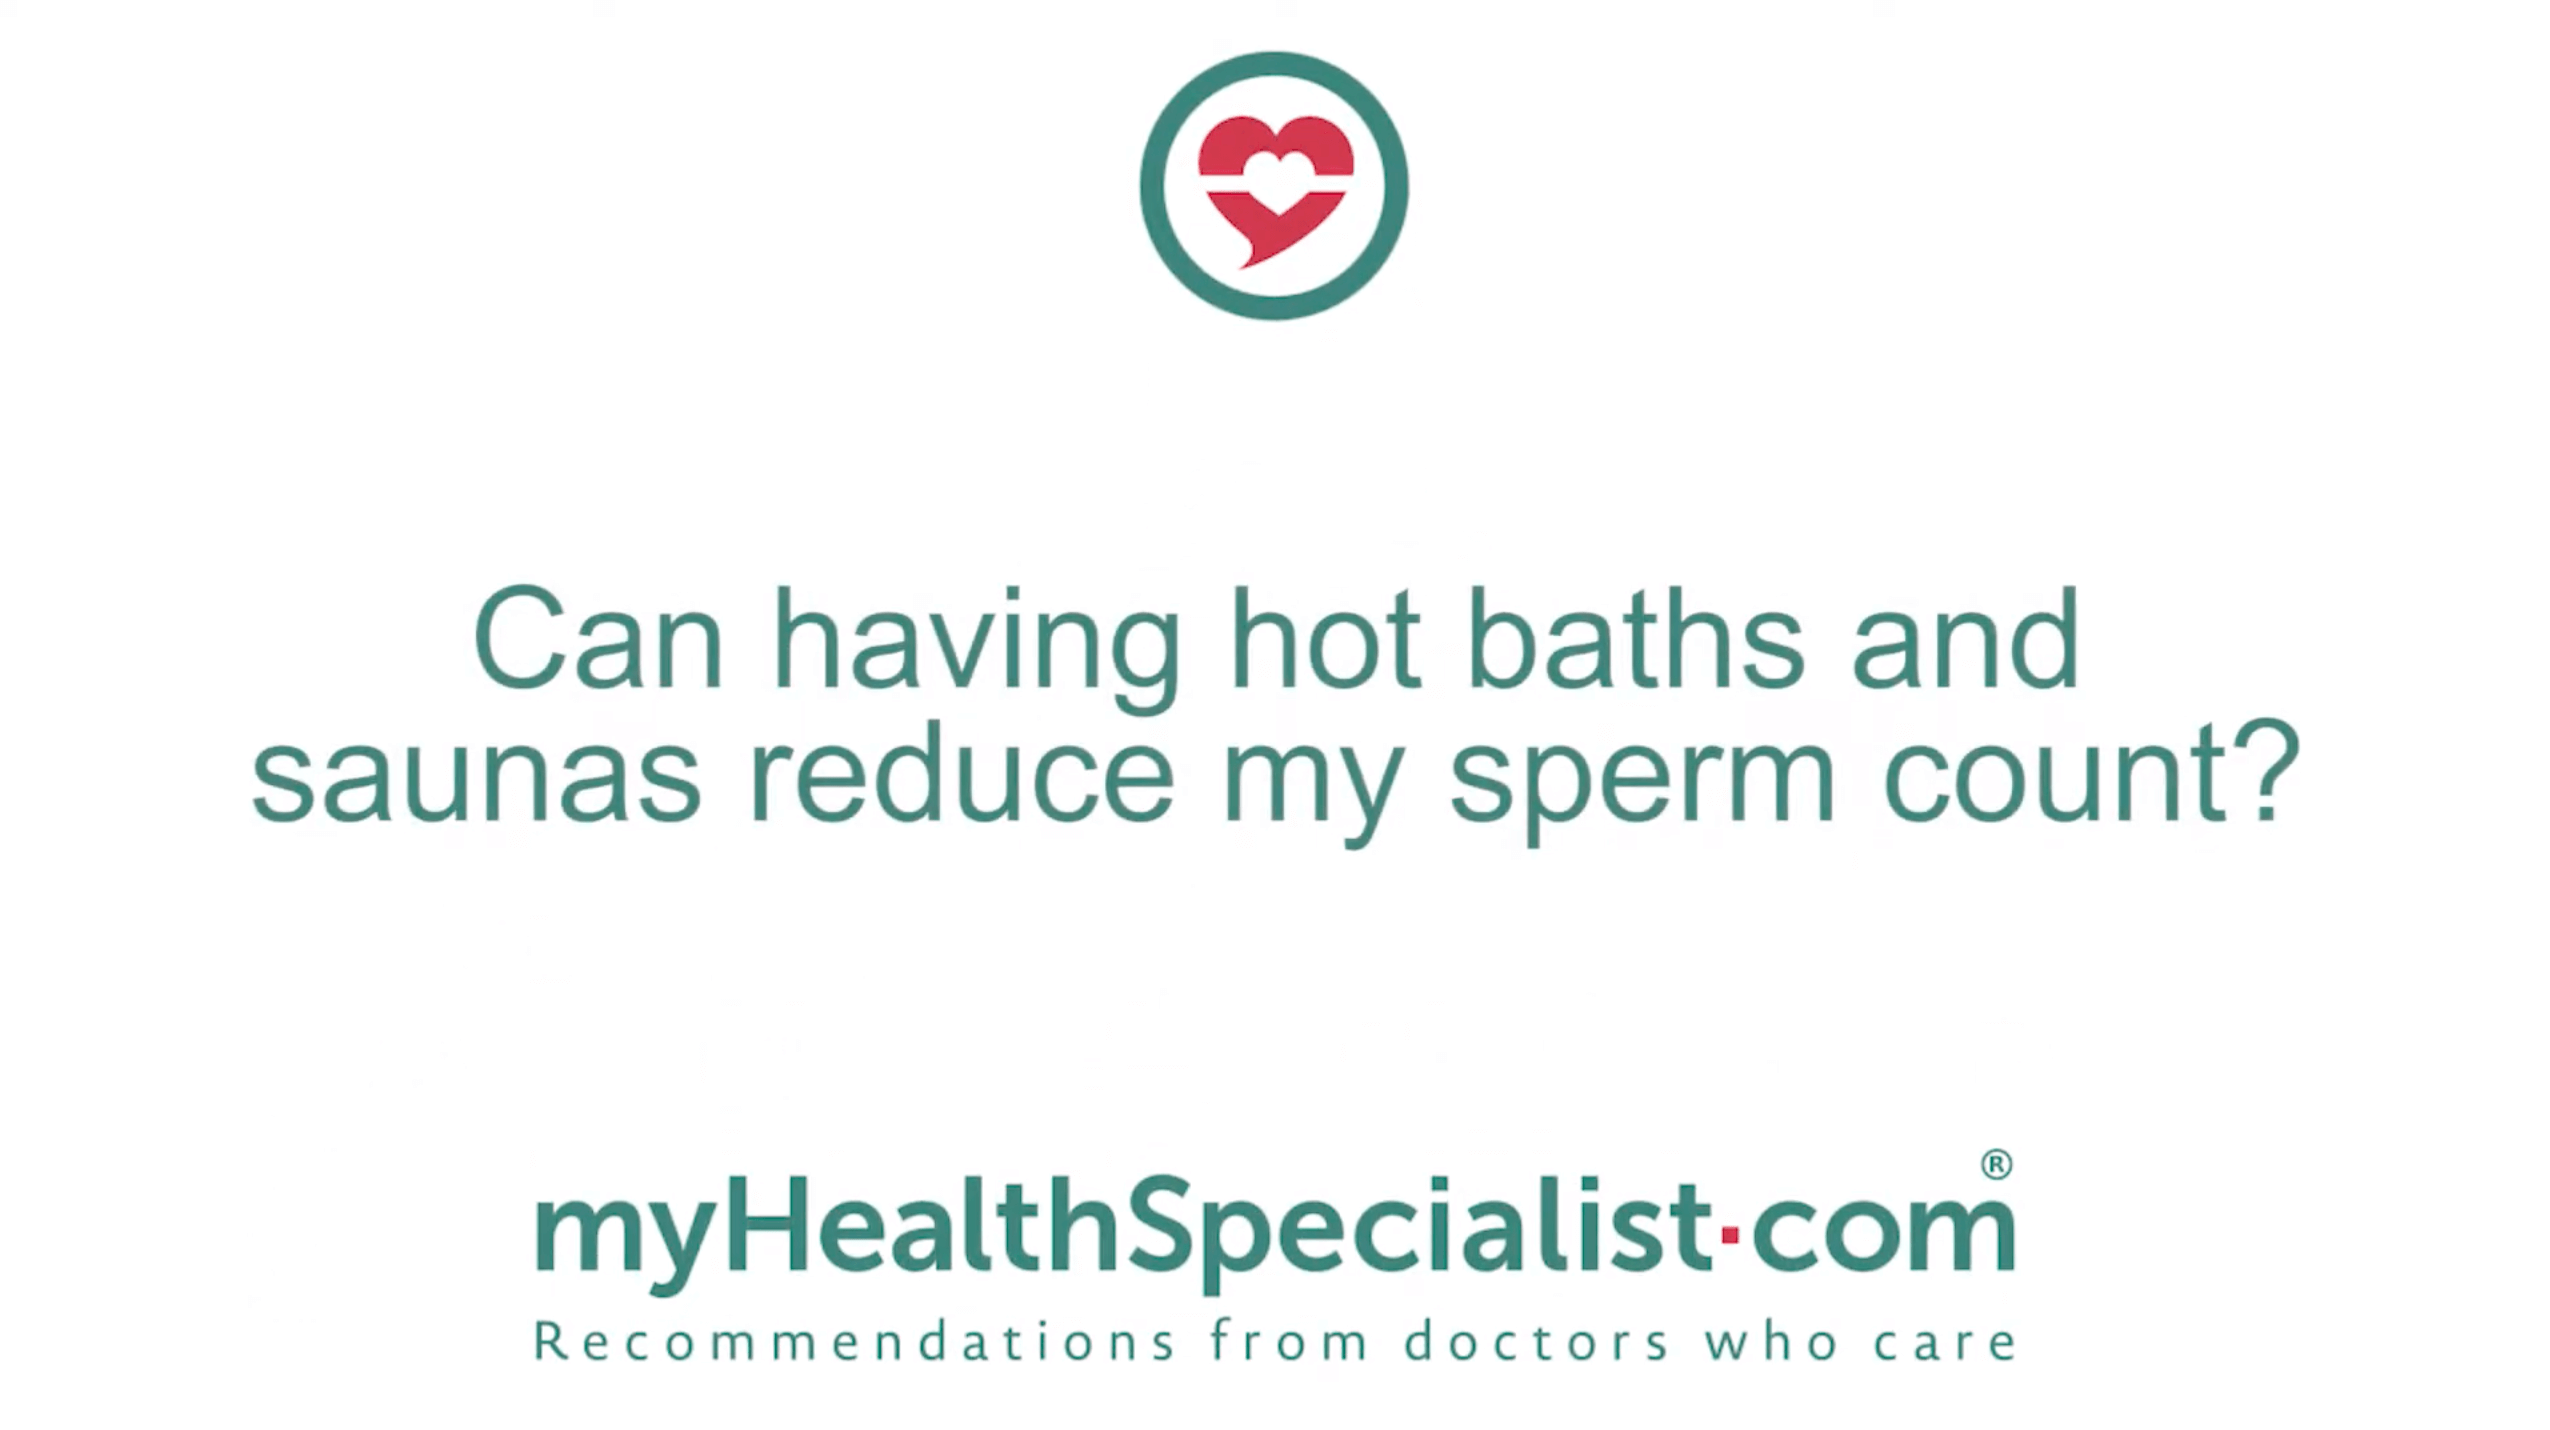 Can having hot baths and saunas reduce my sperm count?